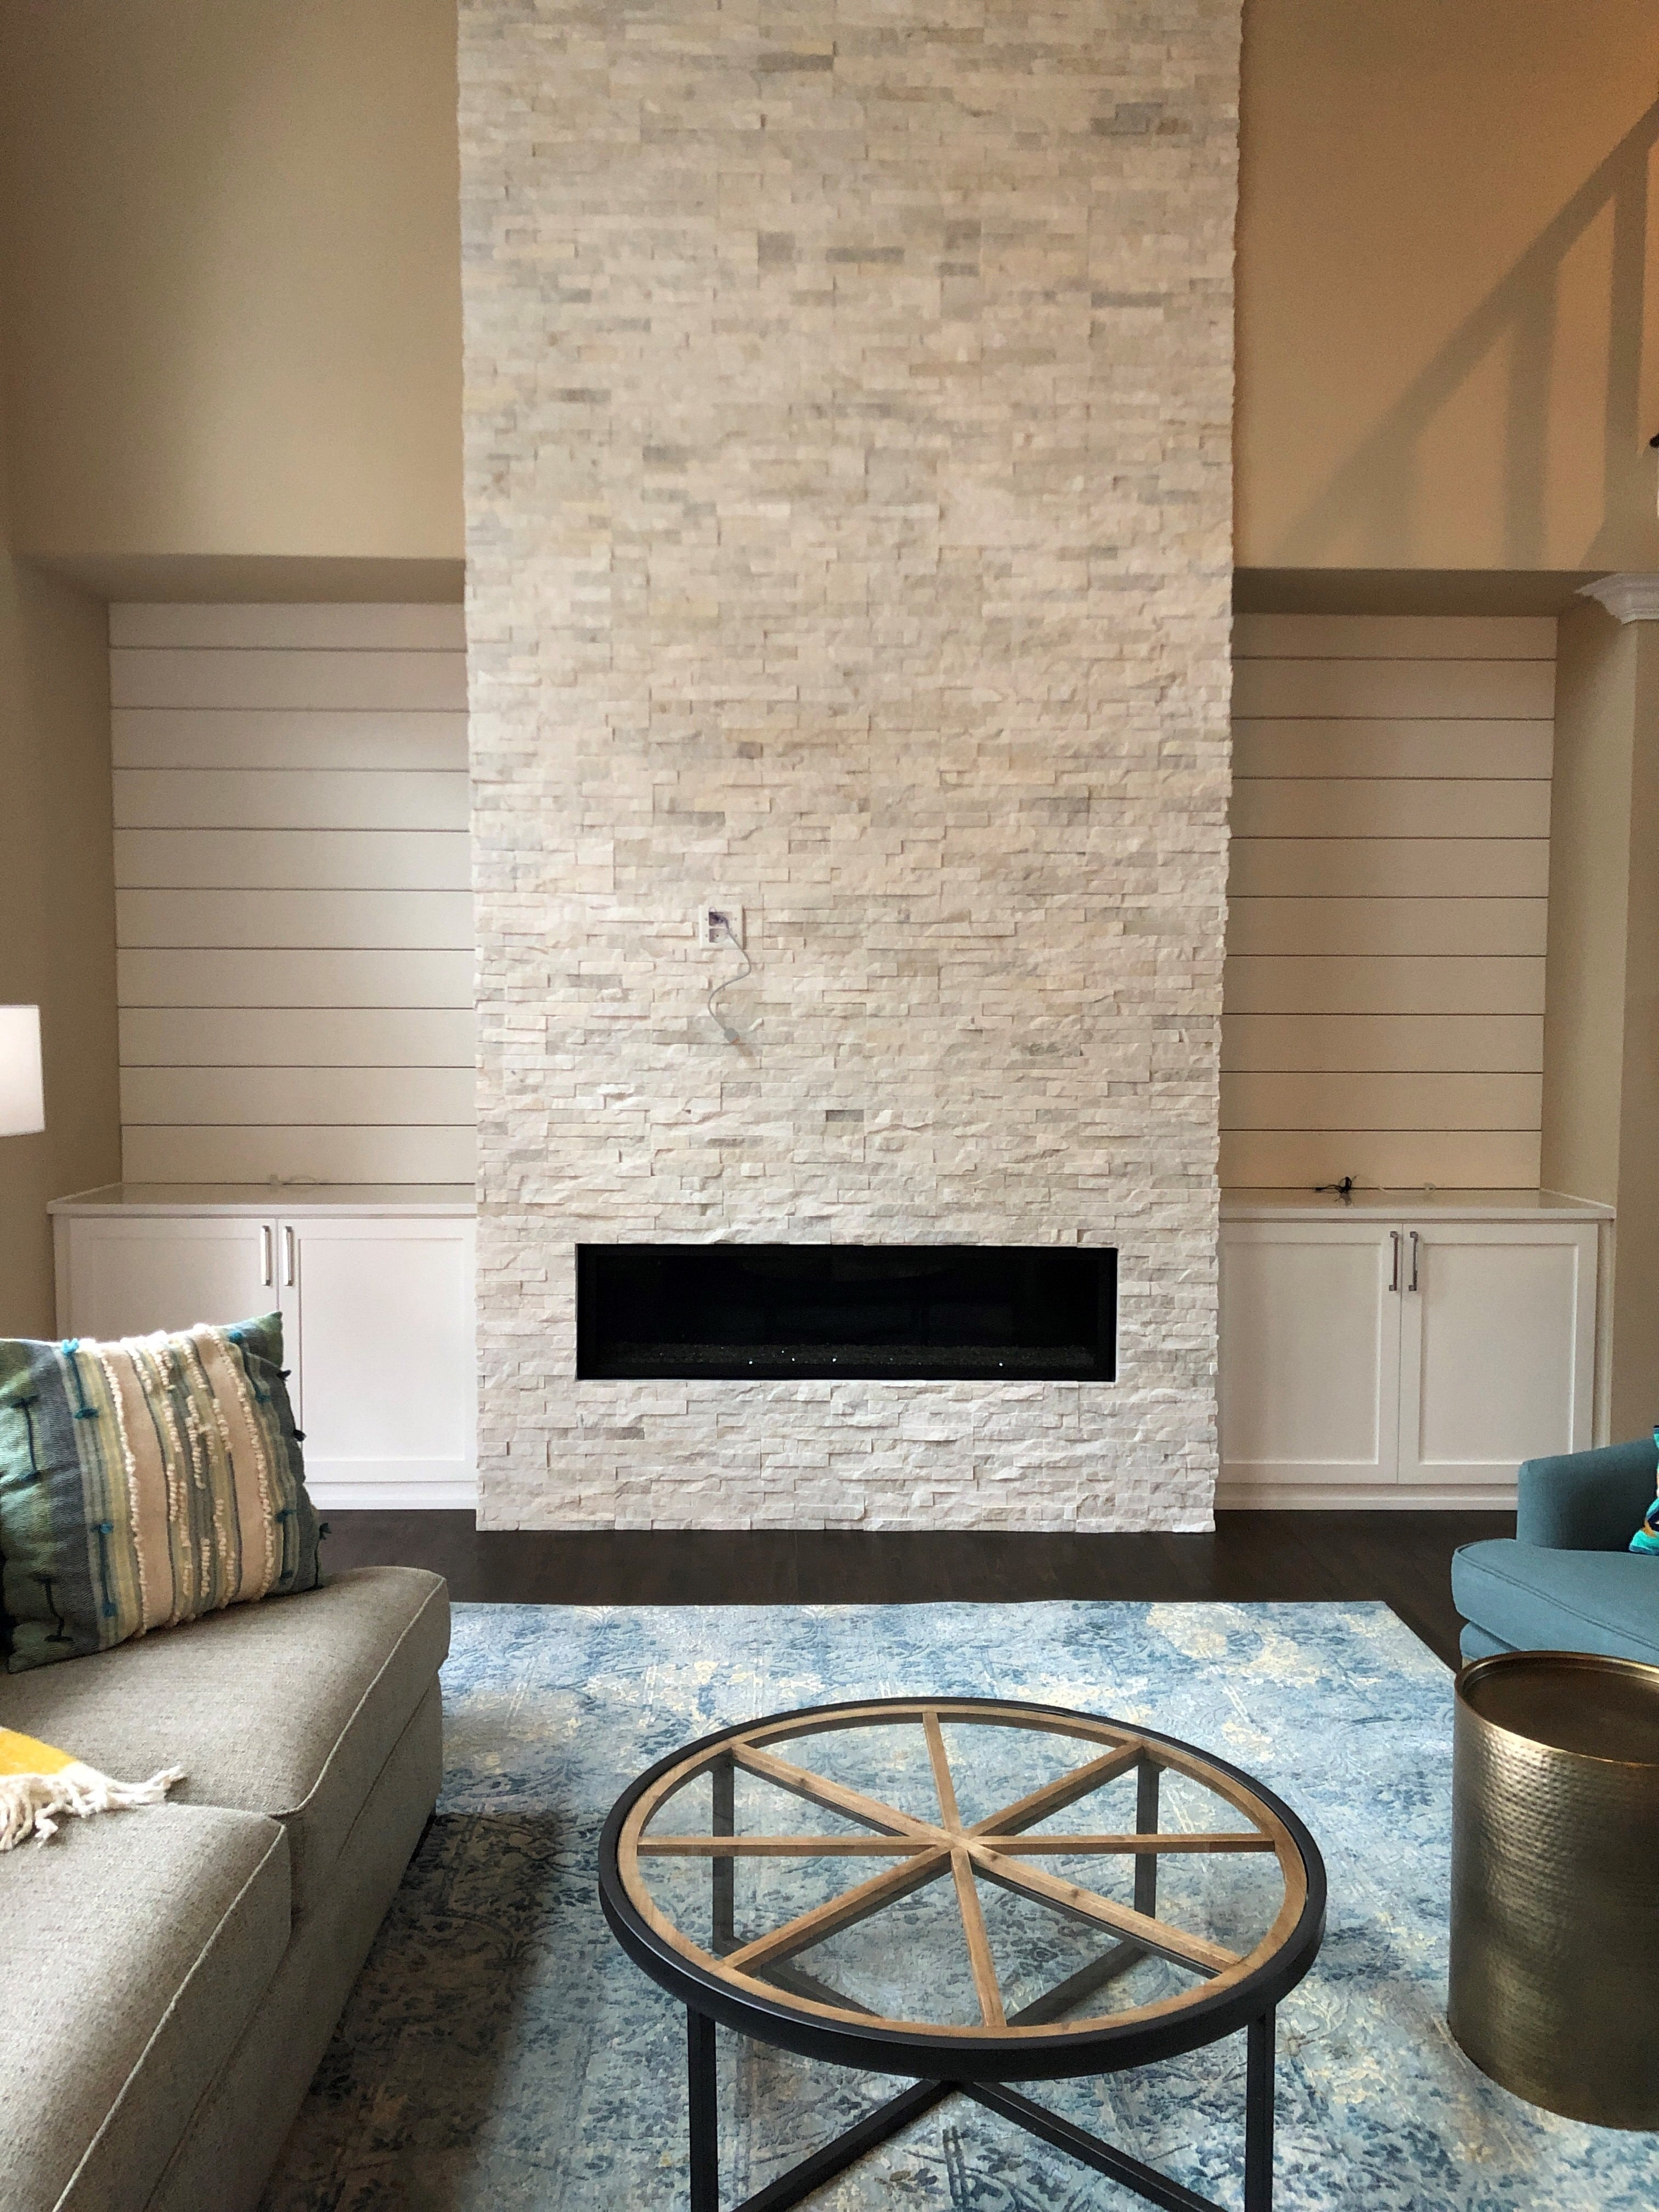 Norstone White Rock Panels used on a two story residential fireplace featuring a long linear fireplace and built in cabinets